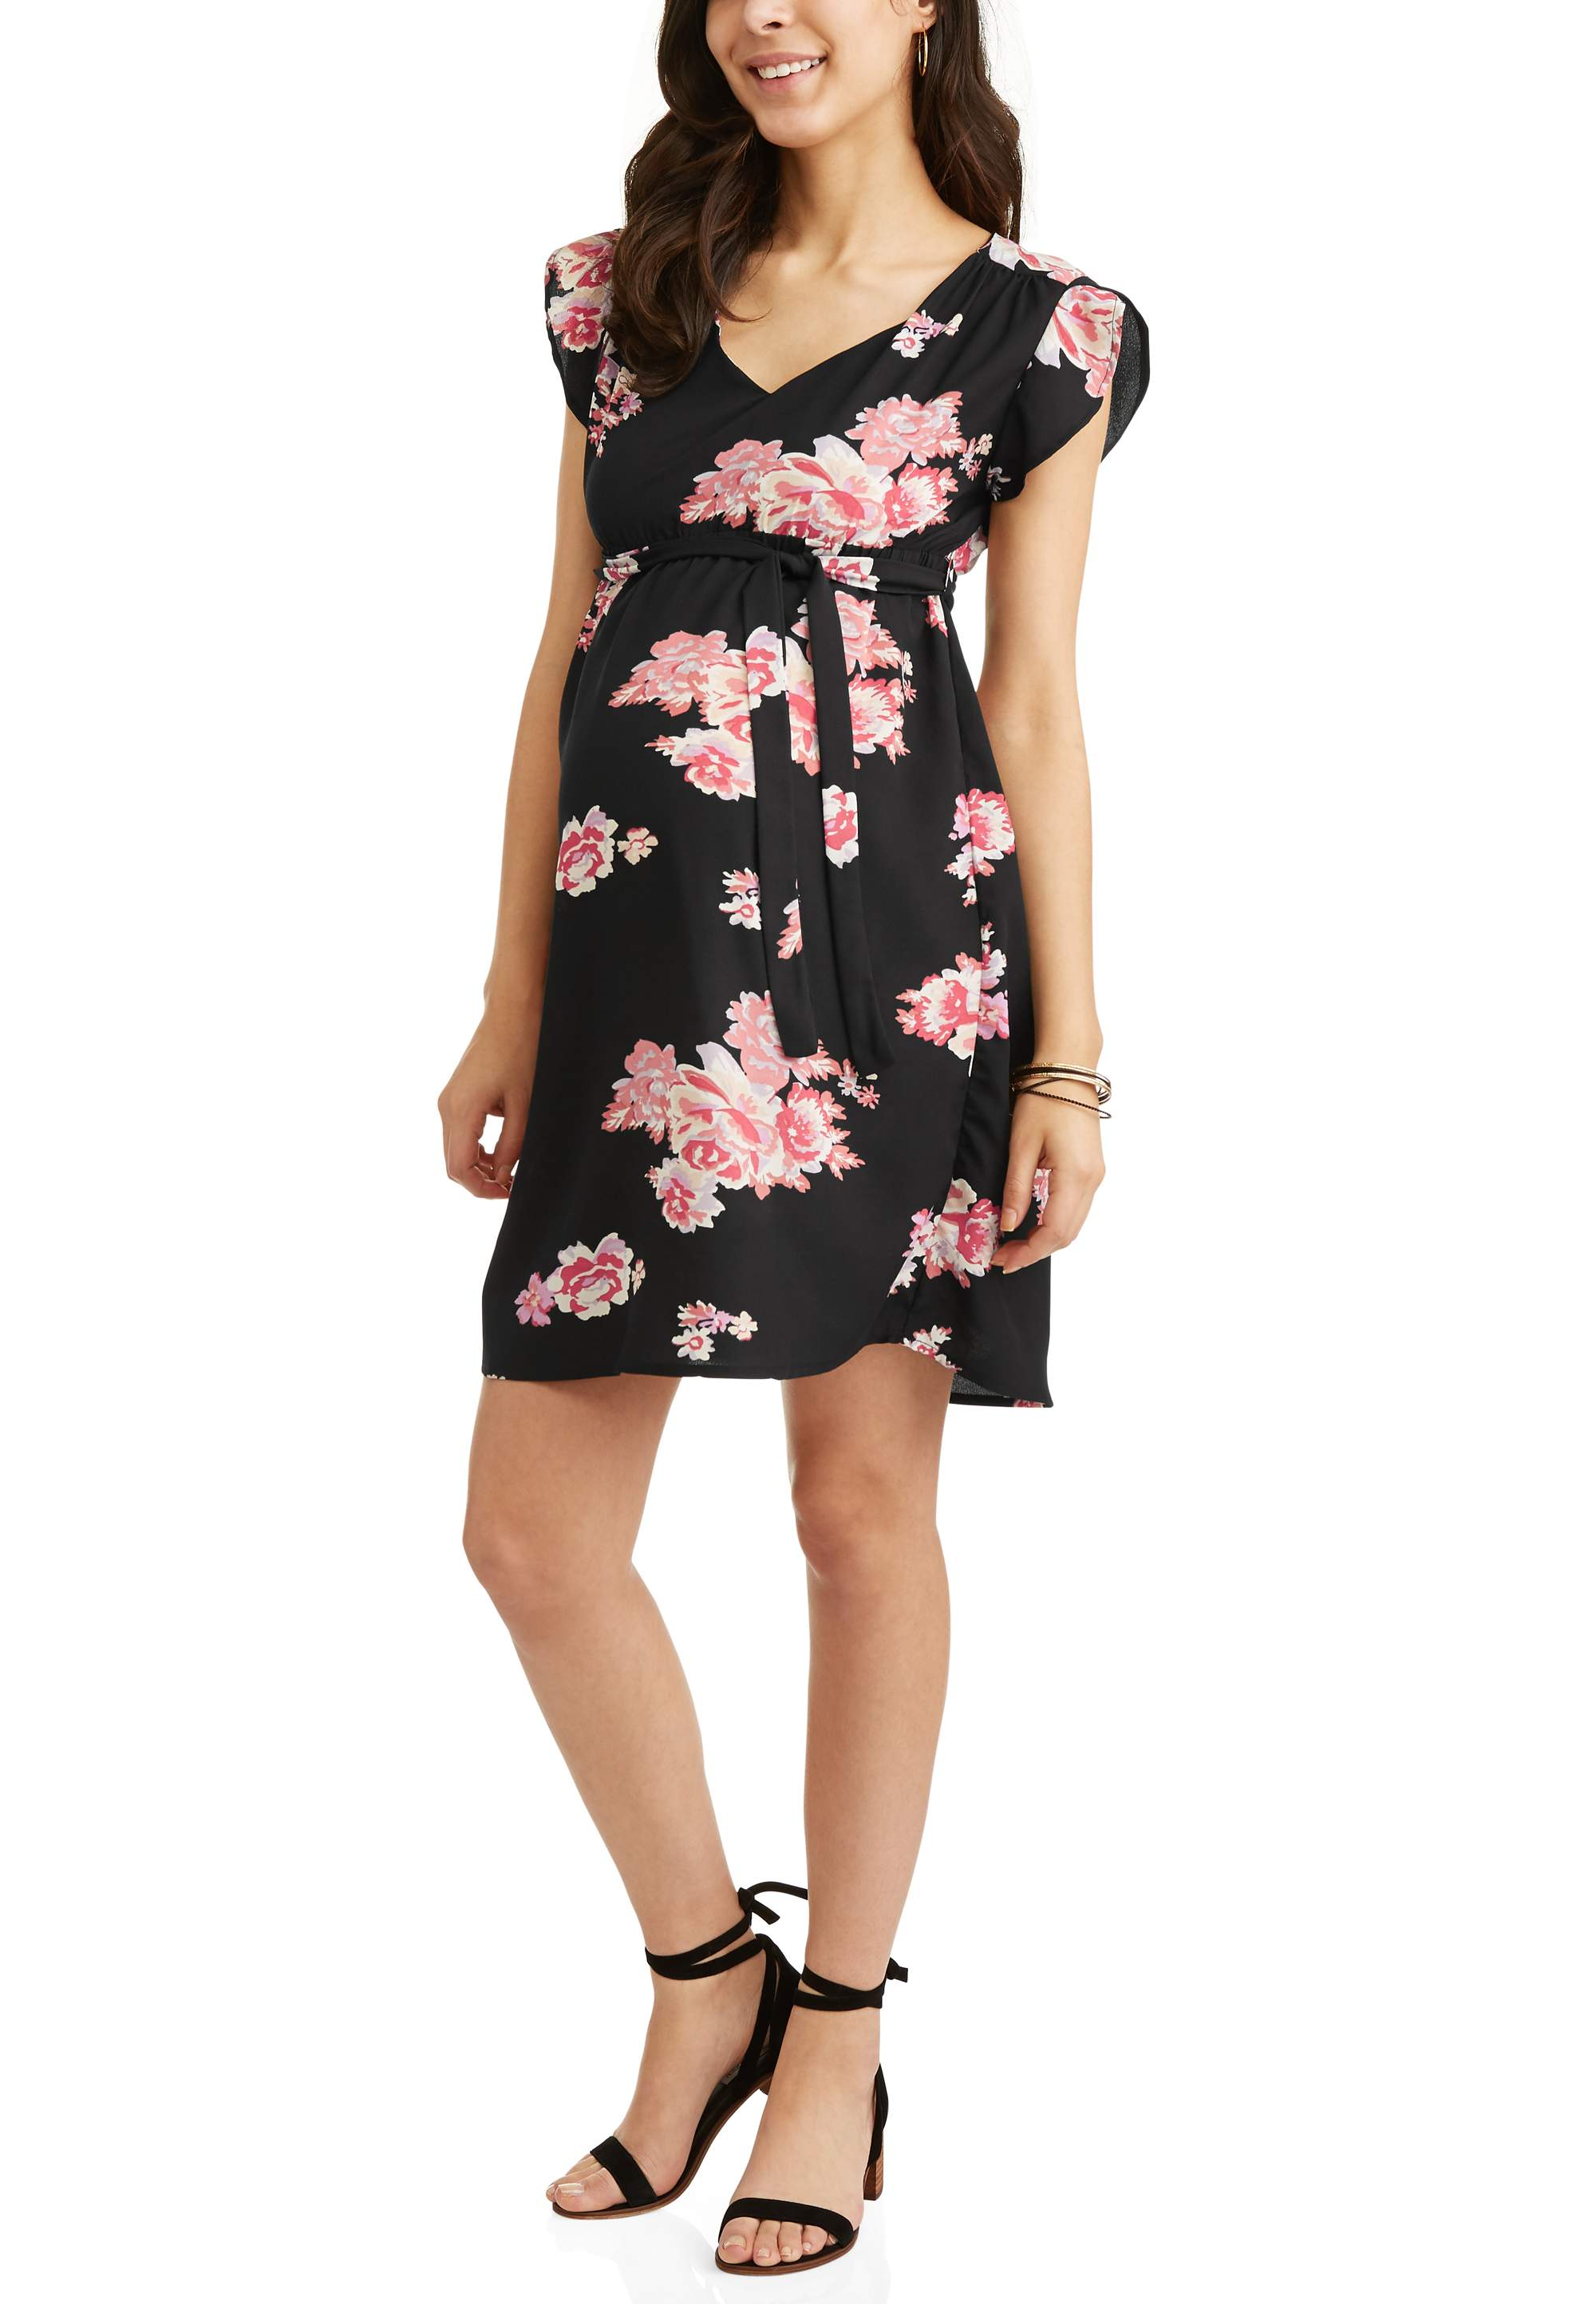 Maternity Floral Tie Front Dress - Available in Plus Sizes